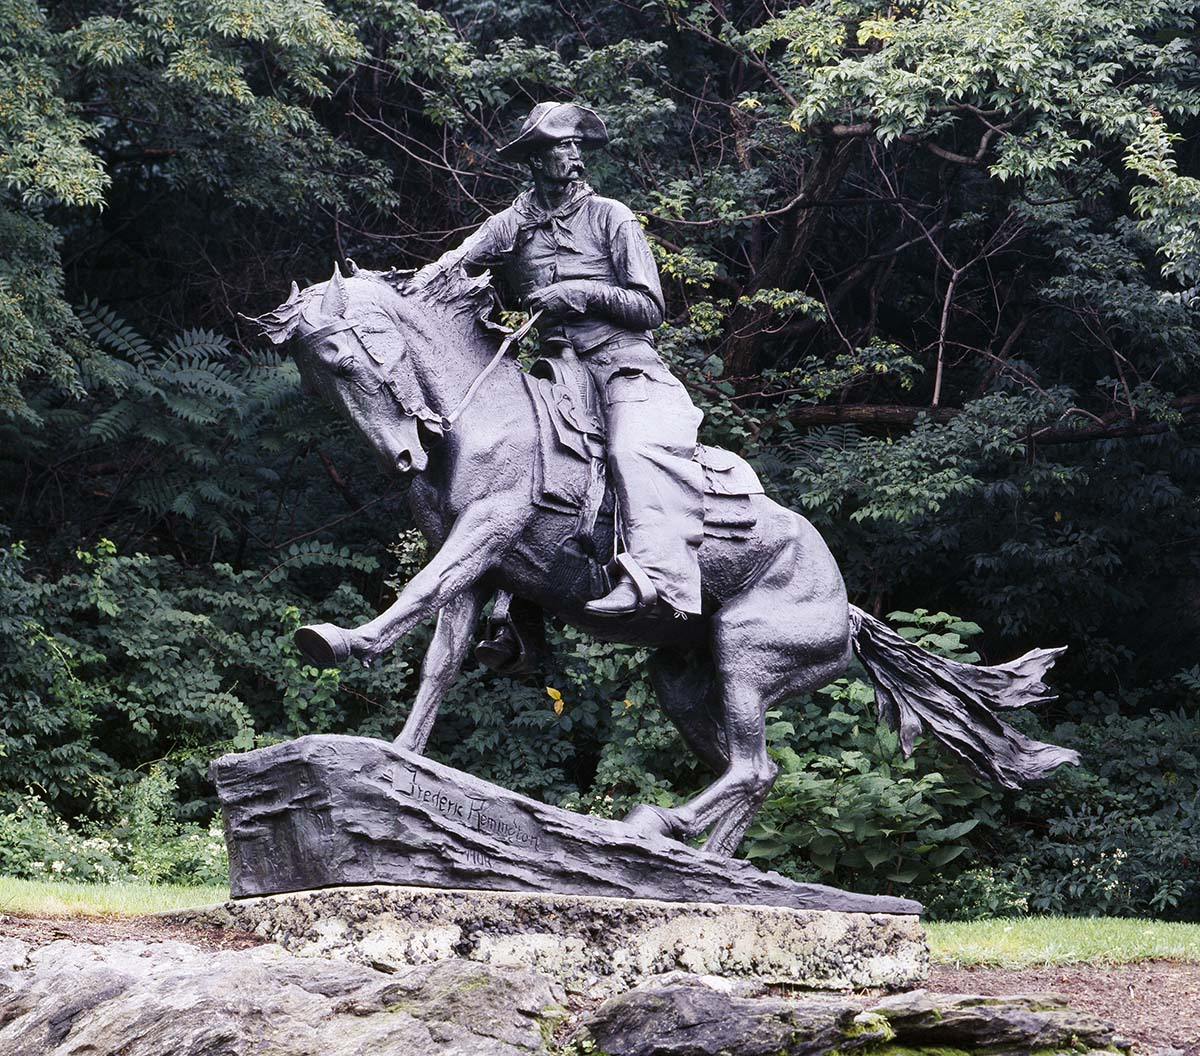 "Frederic Remington (1861-1909). ""Cowboy,"" 1908. Bronze. Owned by City of Philadelphia and Fairmount Park Commission. Library of Congress Prints and Photographs Division Washington, D.C. 20540 USA. Carol M. Highsmith Archive. LC-DIG-highsm-12287."